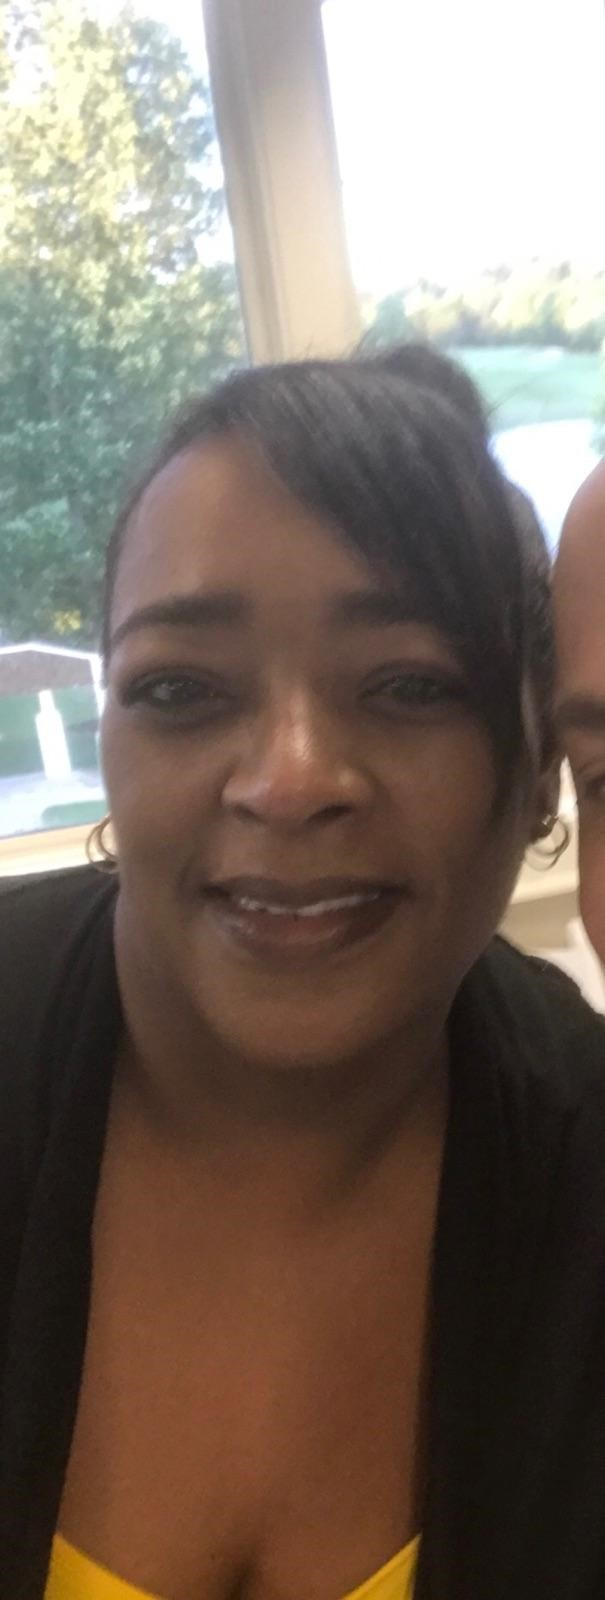 47-year-old Patricia Lynn Murray hasn't been seen since Friday, September 29, 2017. On Monday, October 2, 2017, her son, Galen Briggs, filed a missing person. (Photo credit: Patricia Murray family)